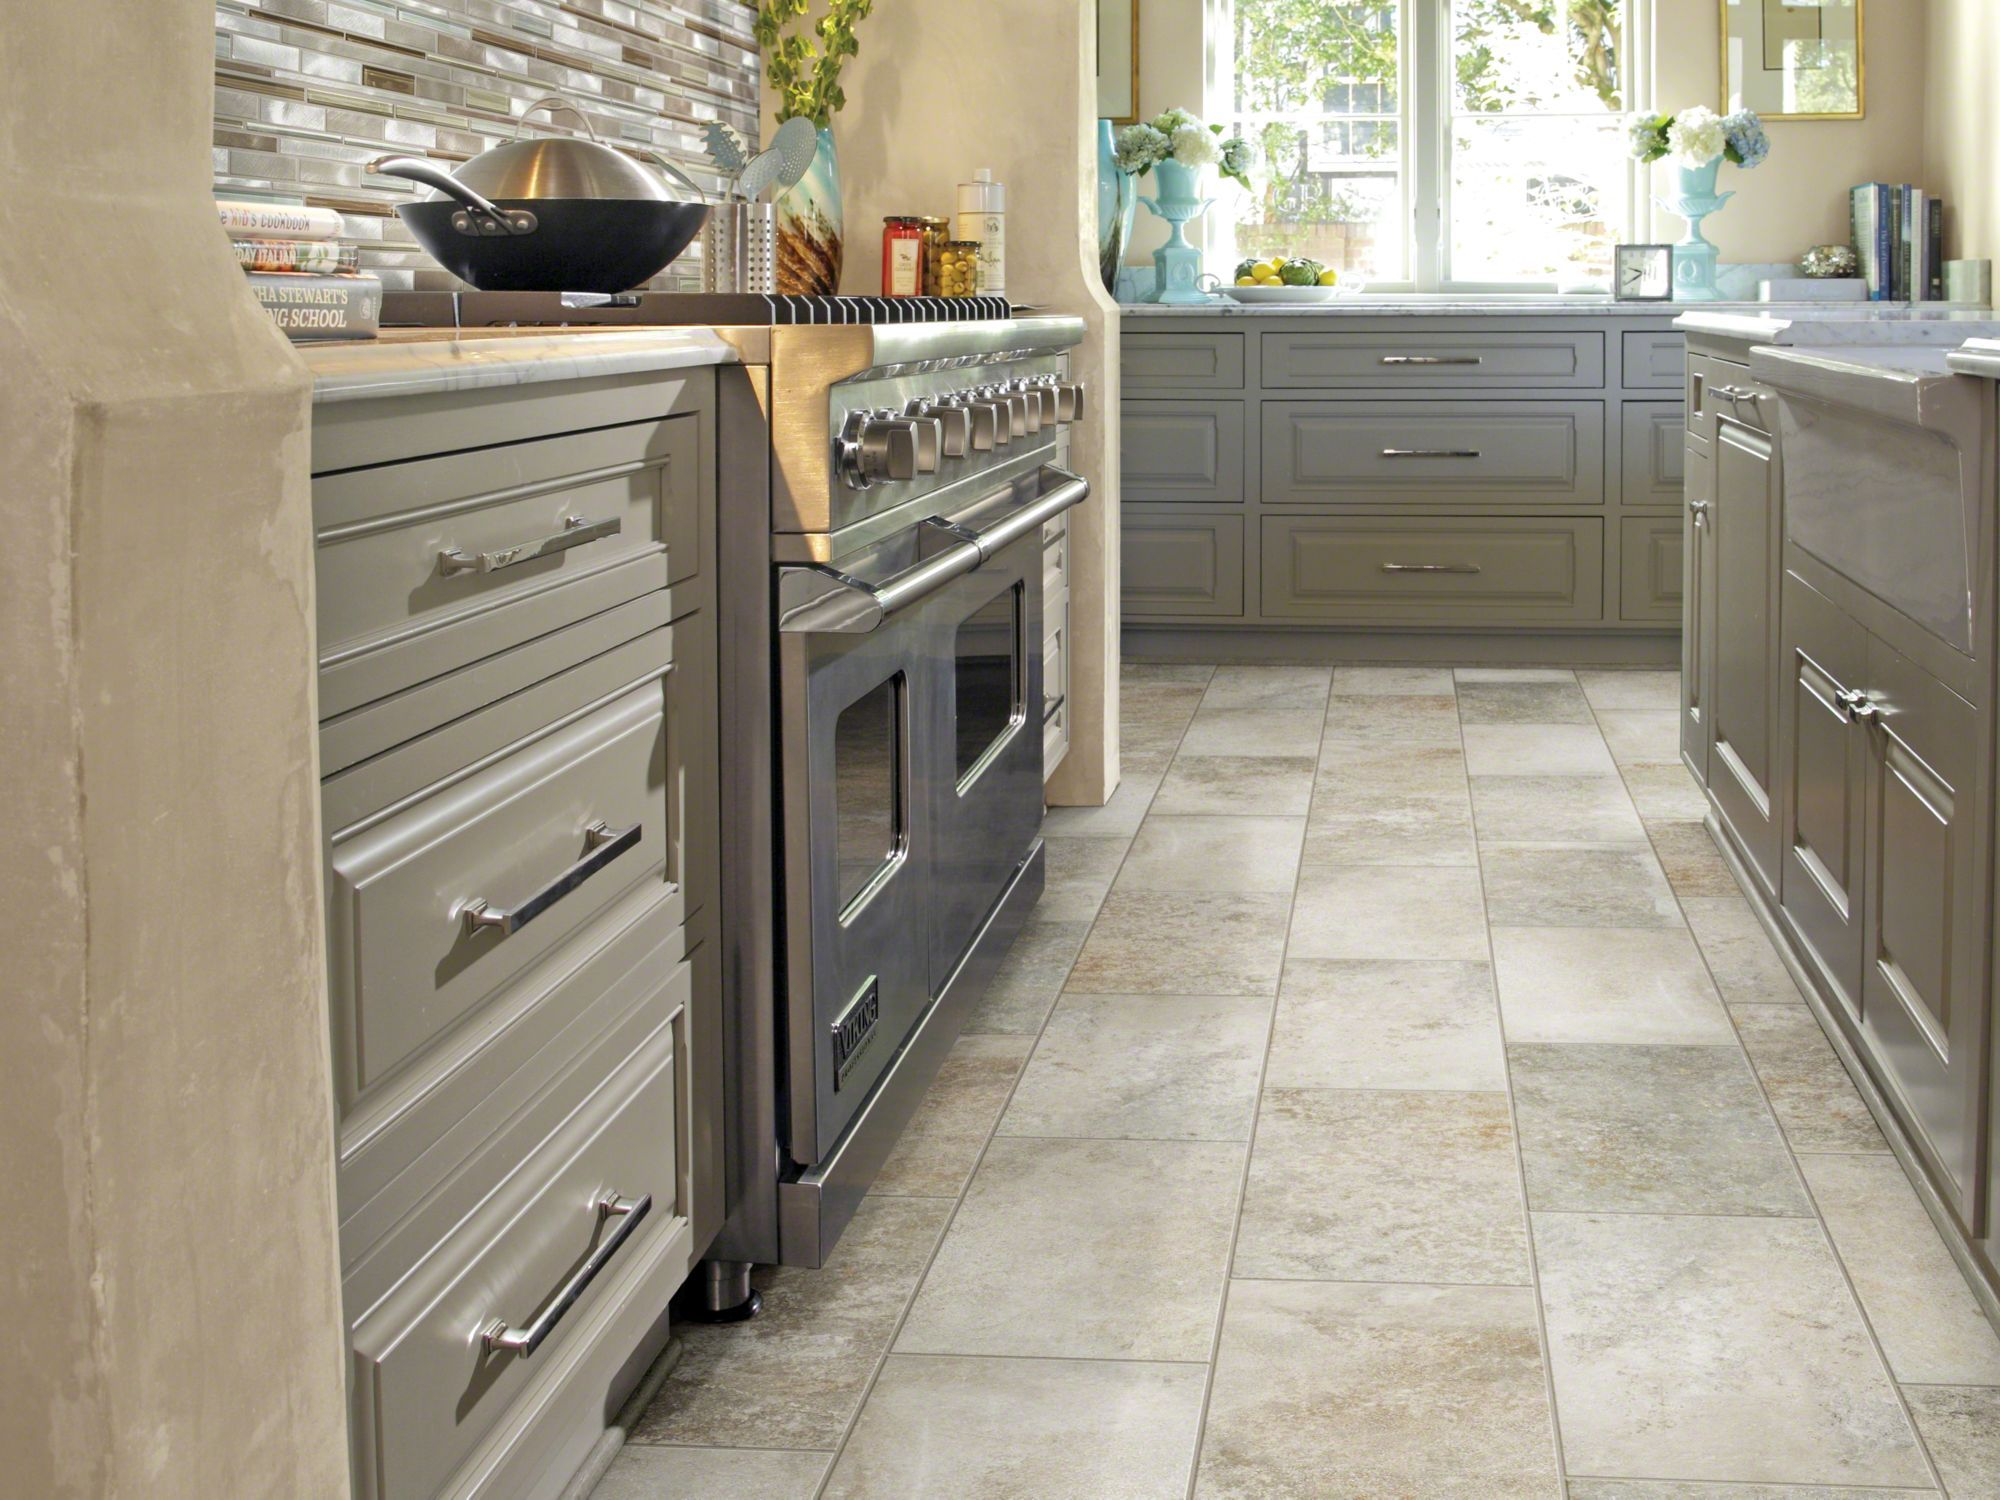 Tile flooring grout line width grout stone and stone walls distinctive tile stone grout line widthwid1020 dailygadgetfo Image collections